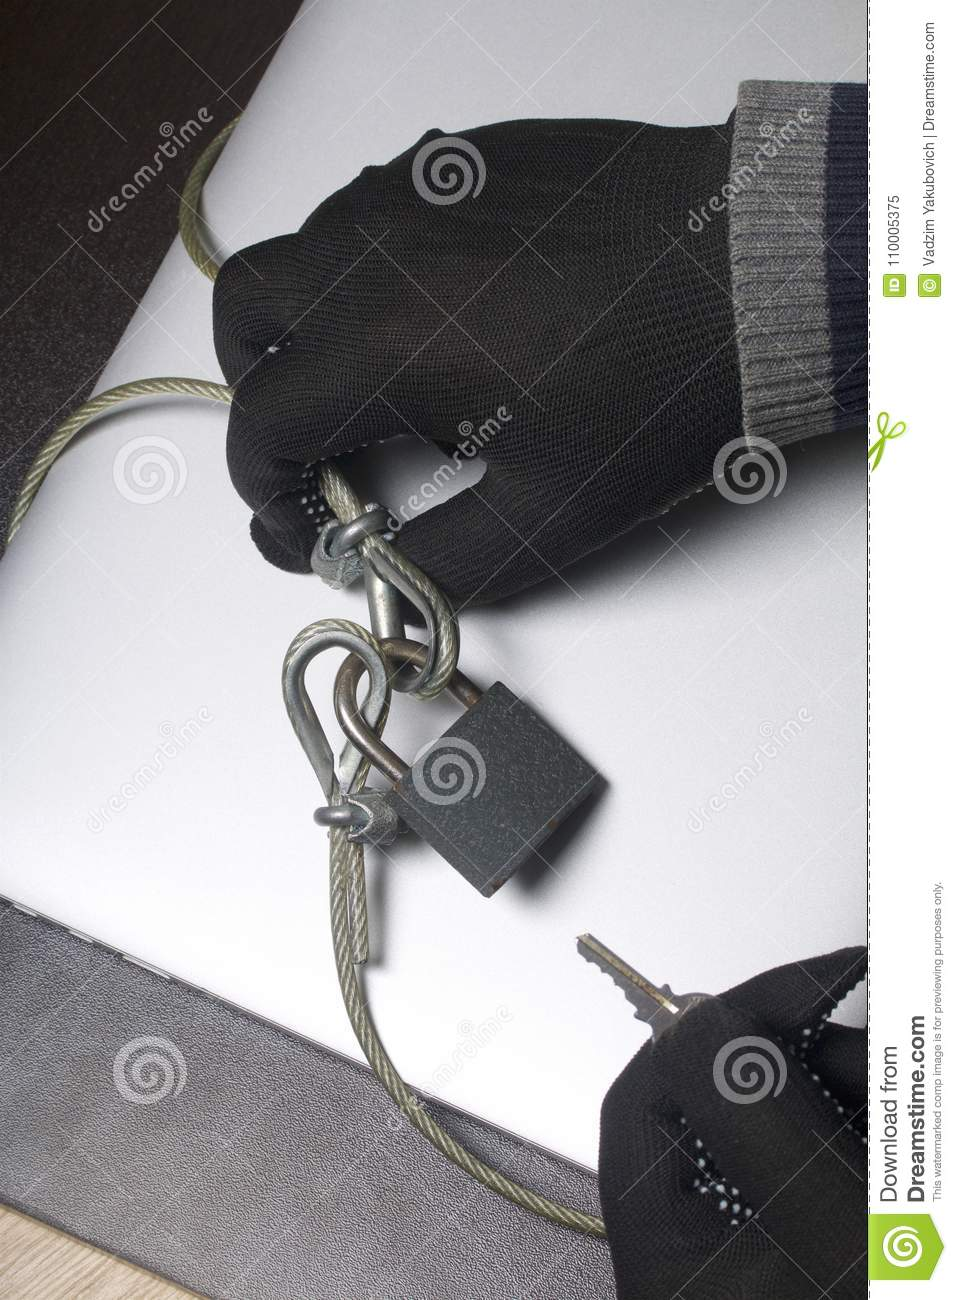 Computer security. Protection of access to data. The laptop is protected by a security cable and a lock. An attacker with gloves t